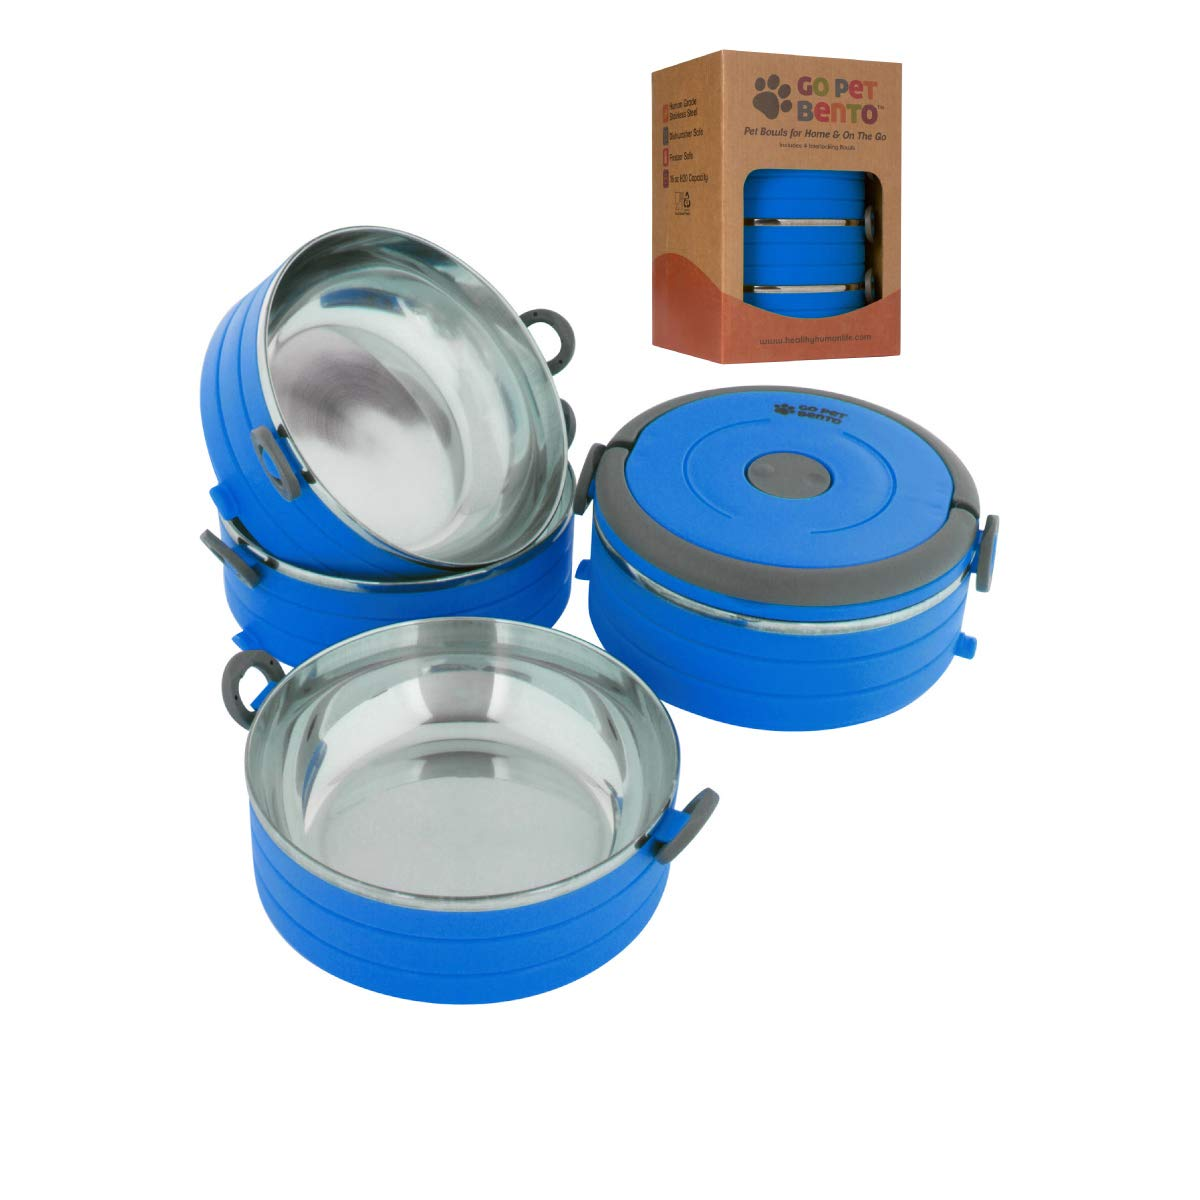 Healthy Human Portable Dog & Pet Travel Bowls with Lid - Human Grade Stainless Steel - Ideal for Food & Water - Blue - 4 Bowl Set